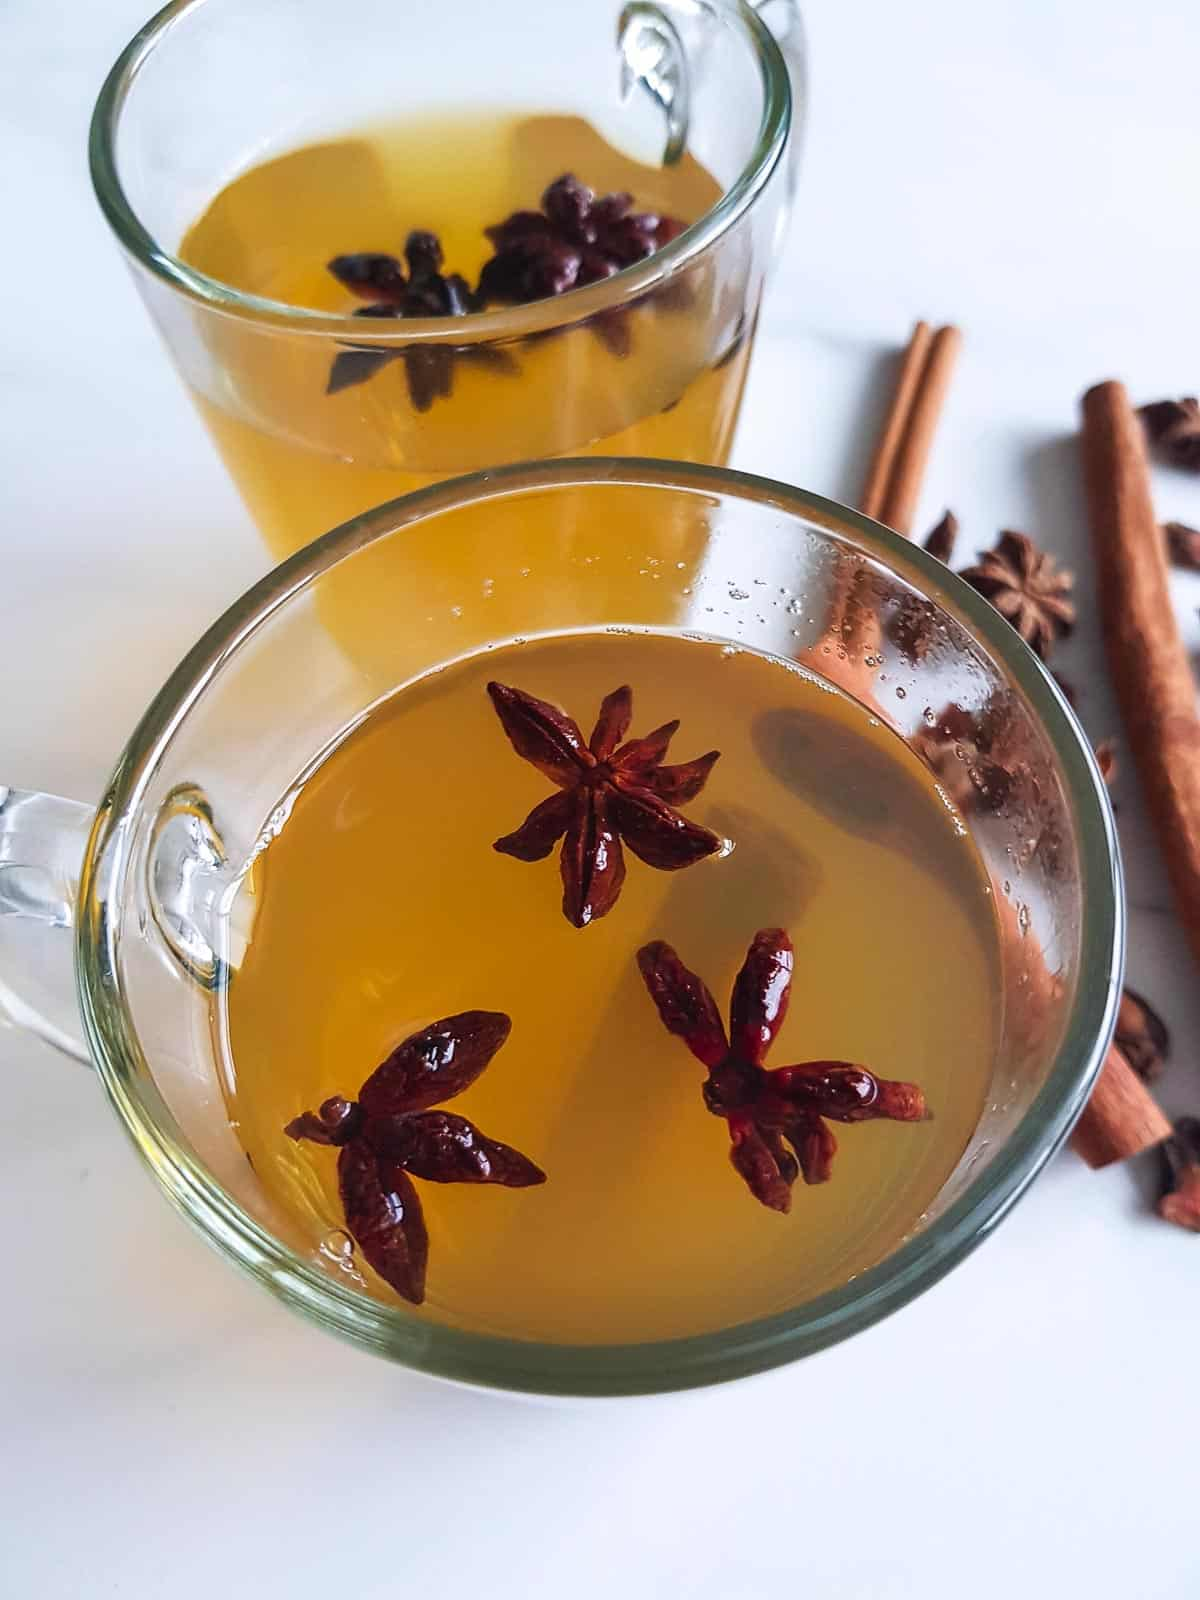 Close up of a cup of tea with star anise.